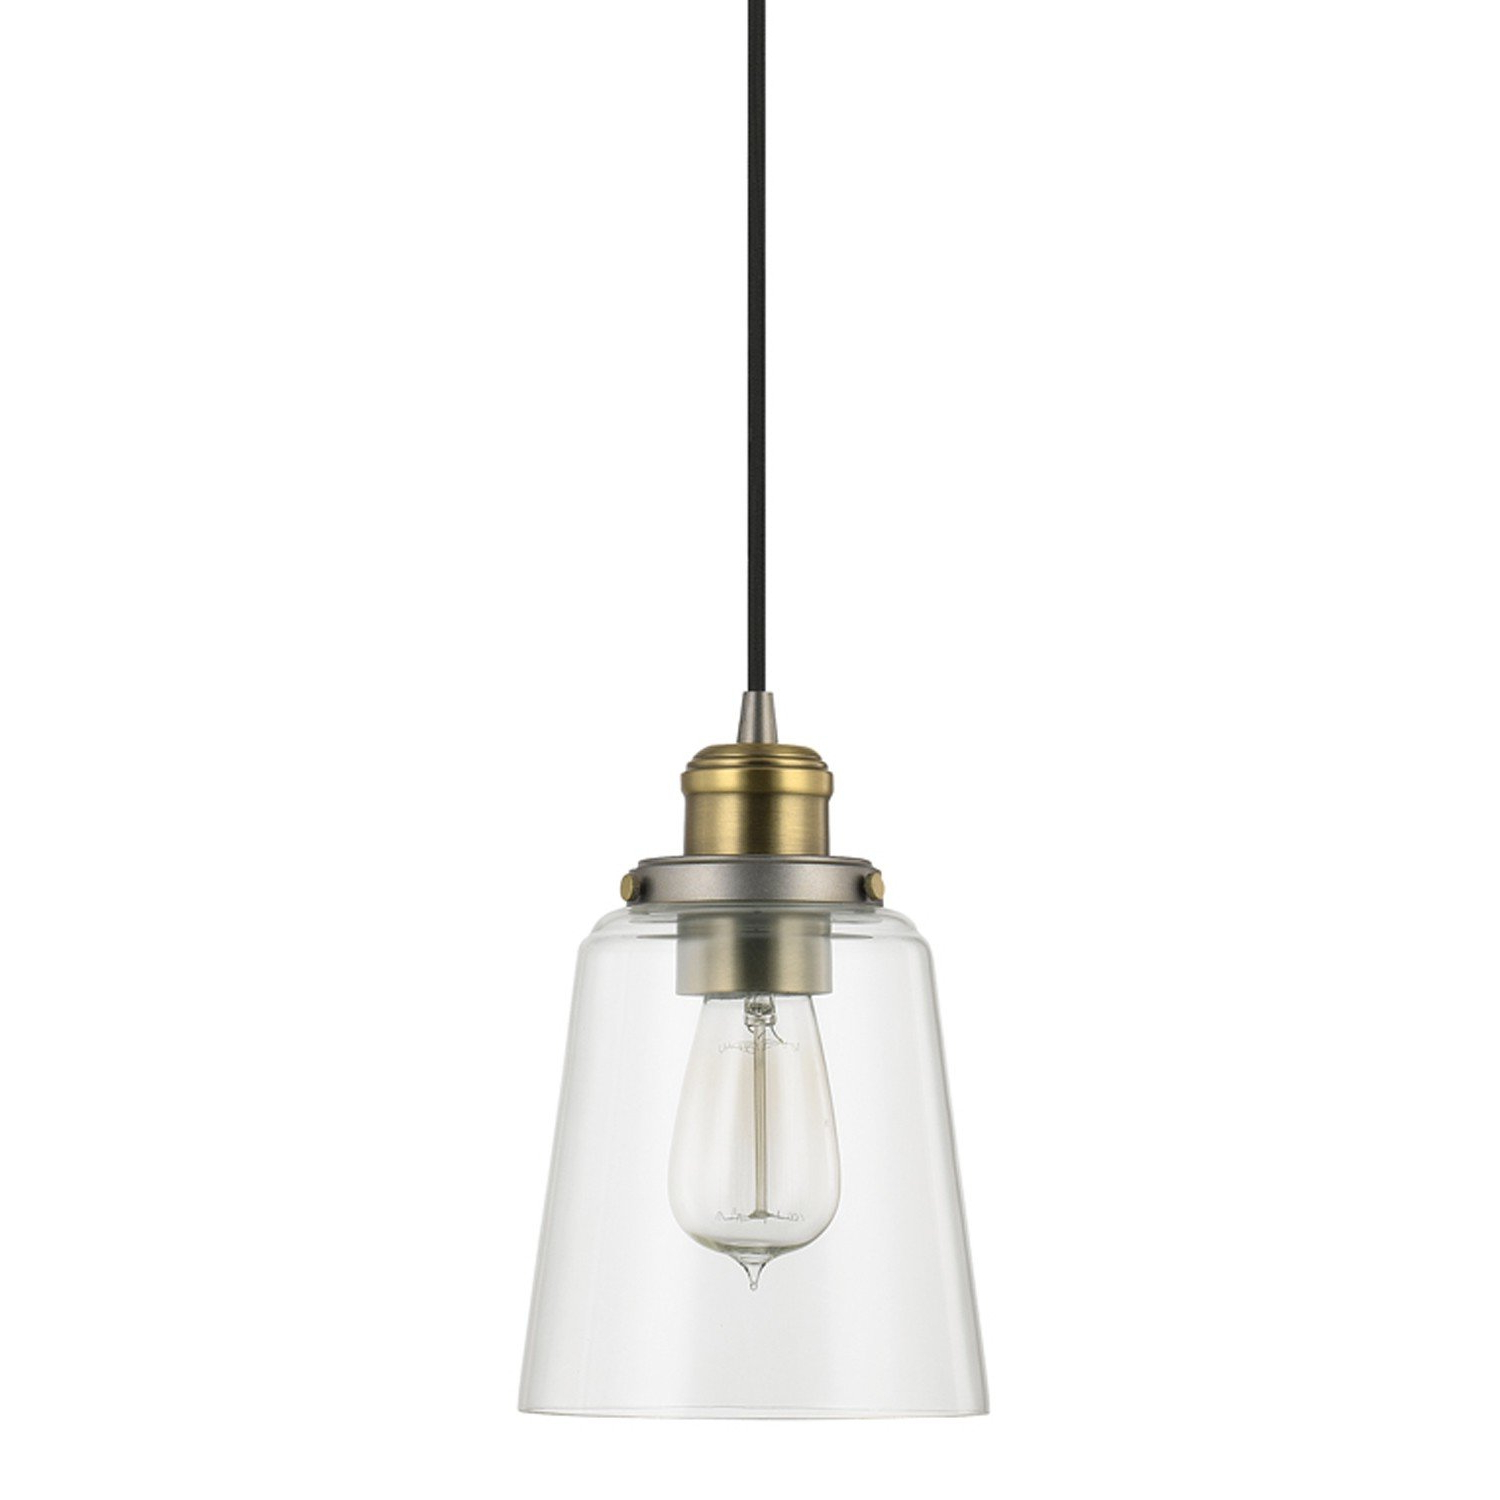 Lorenco 1 Light Single Bell Pendant Pertaining To Widely Used Sue 1 Light Single Jar Pendants (Gallery 17 of 20)